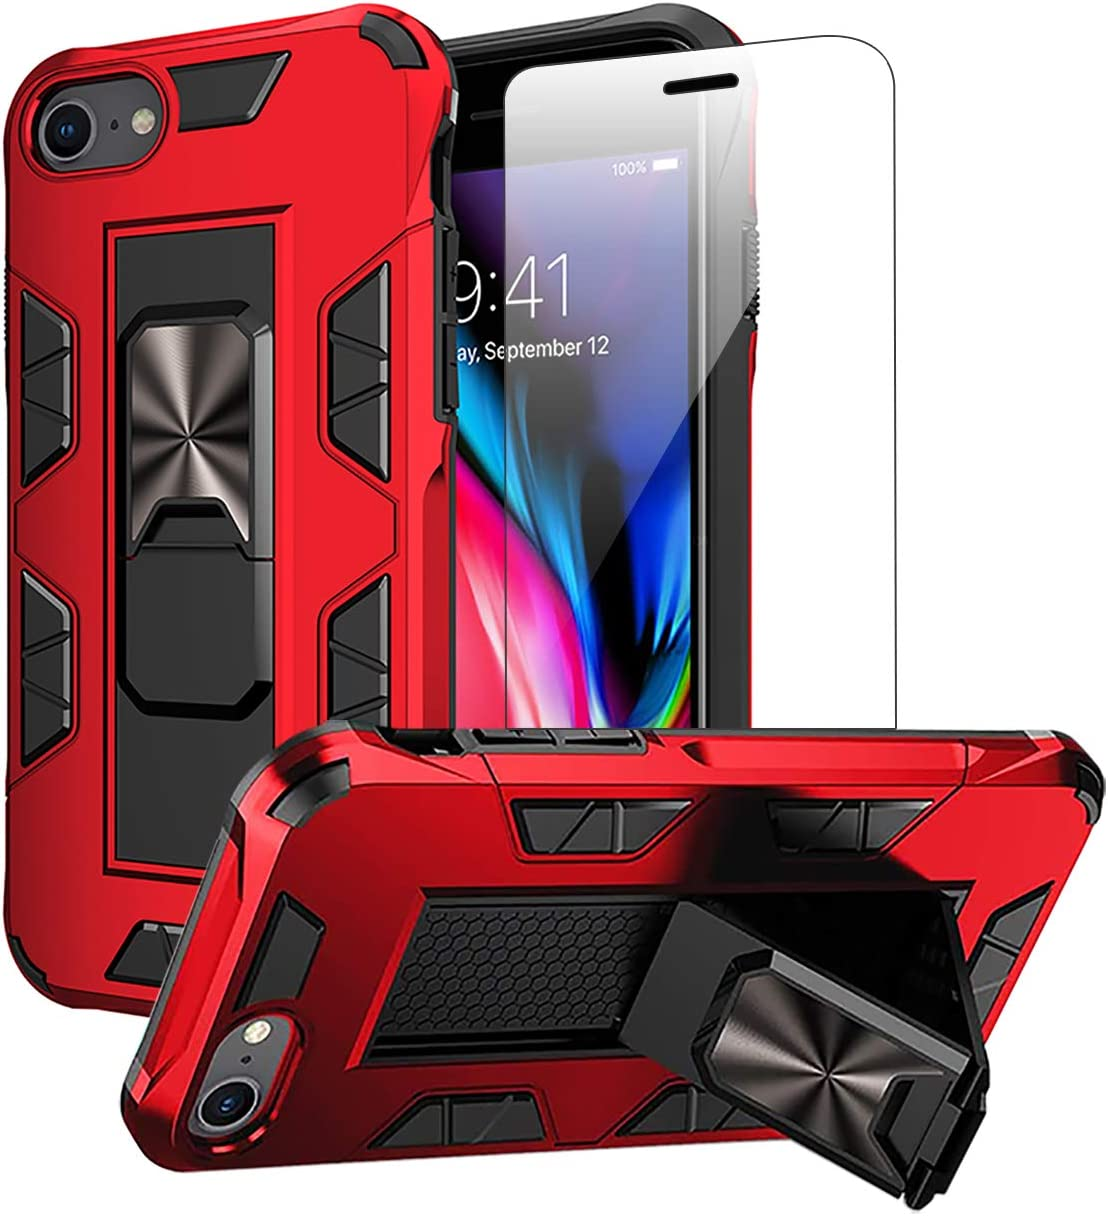 Compatible with iPhone SE 2020 Case iPhone 8 Case iPhone 7 case with Screen Protector Dual Layer Soft Flexible TPU Hard Shell Military Grade Full-Body Rugged Kickstand Protective Cover Cases (Red)